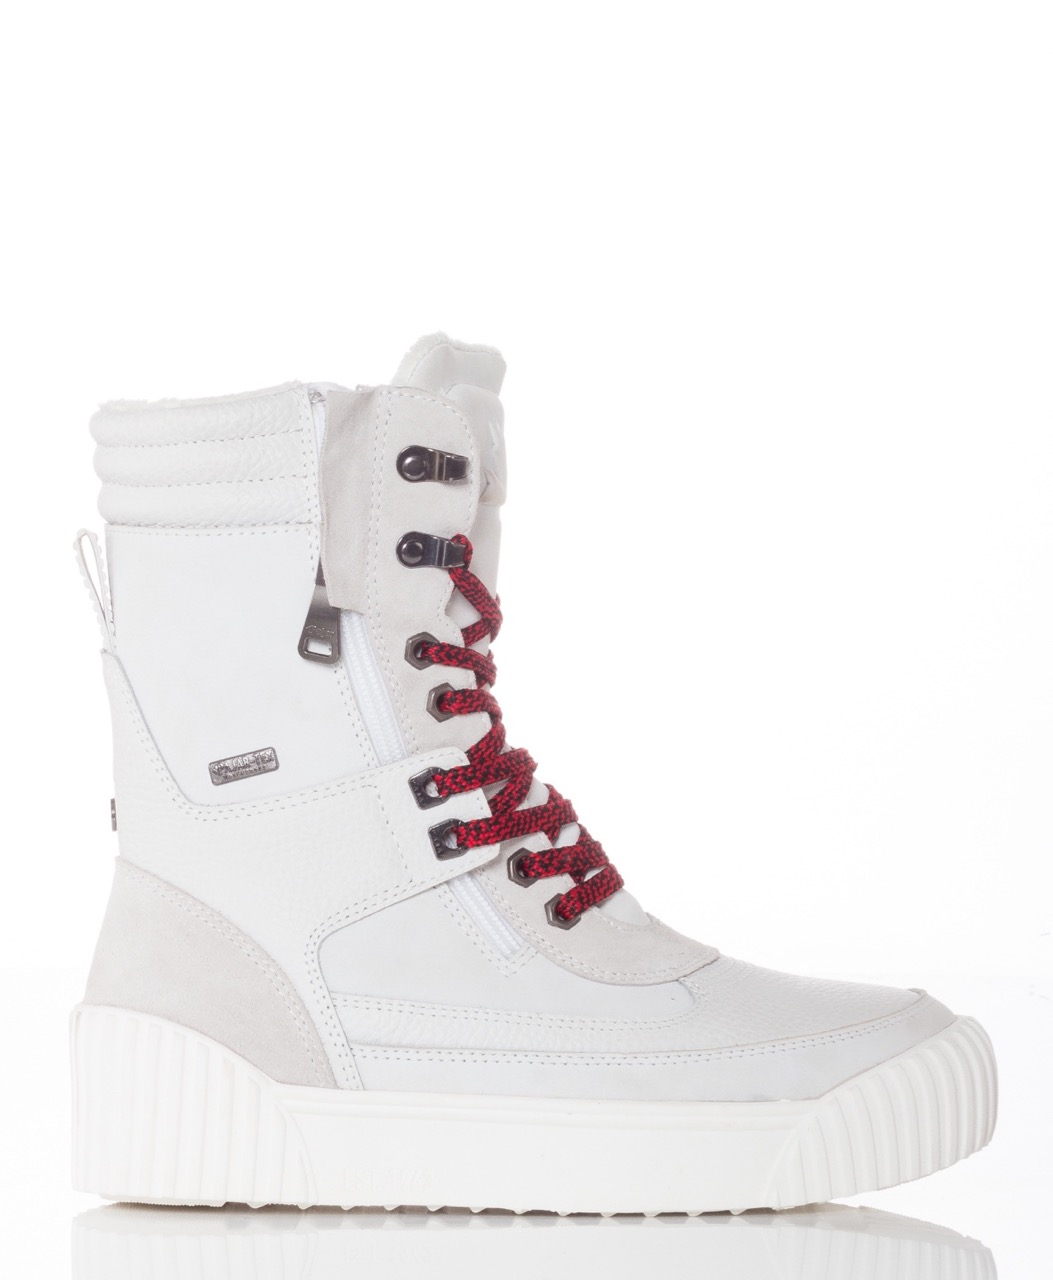 Pajar Winter Boots ROYA White Leather Suede Waterproof